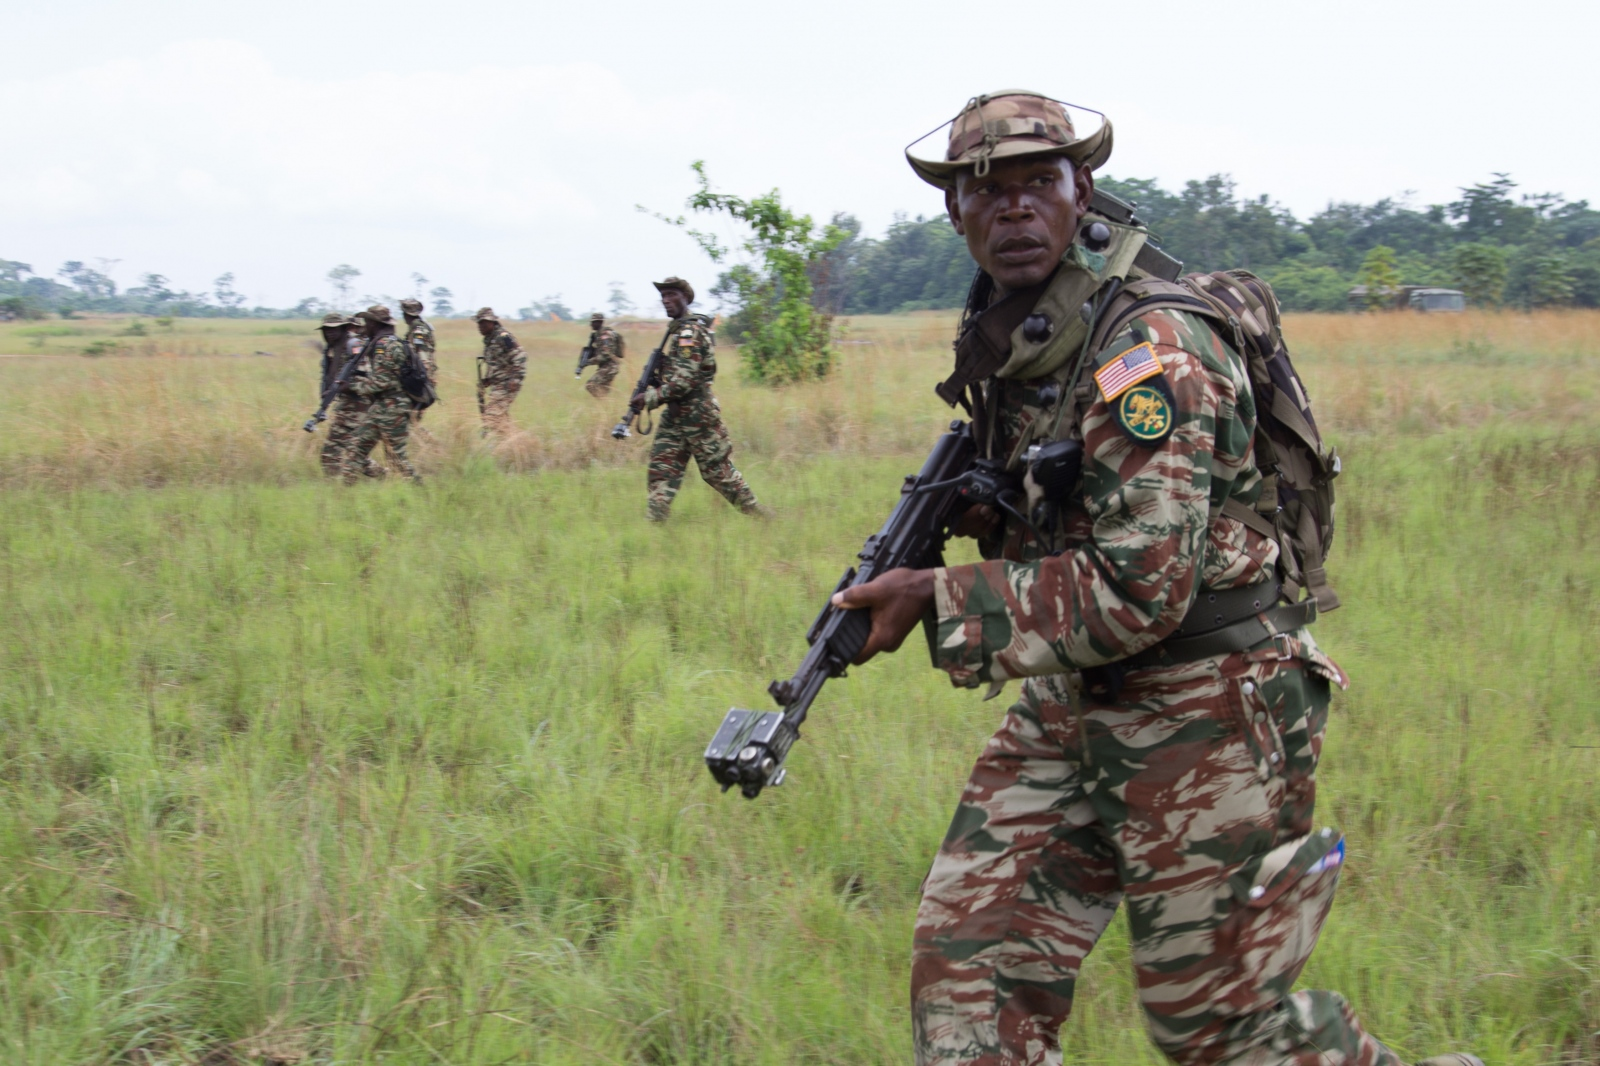 Cameroonian soldiers train for the Central Accord in Ayemi, Gabon.